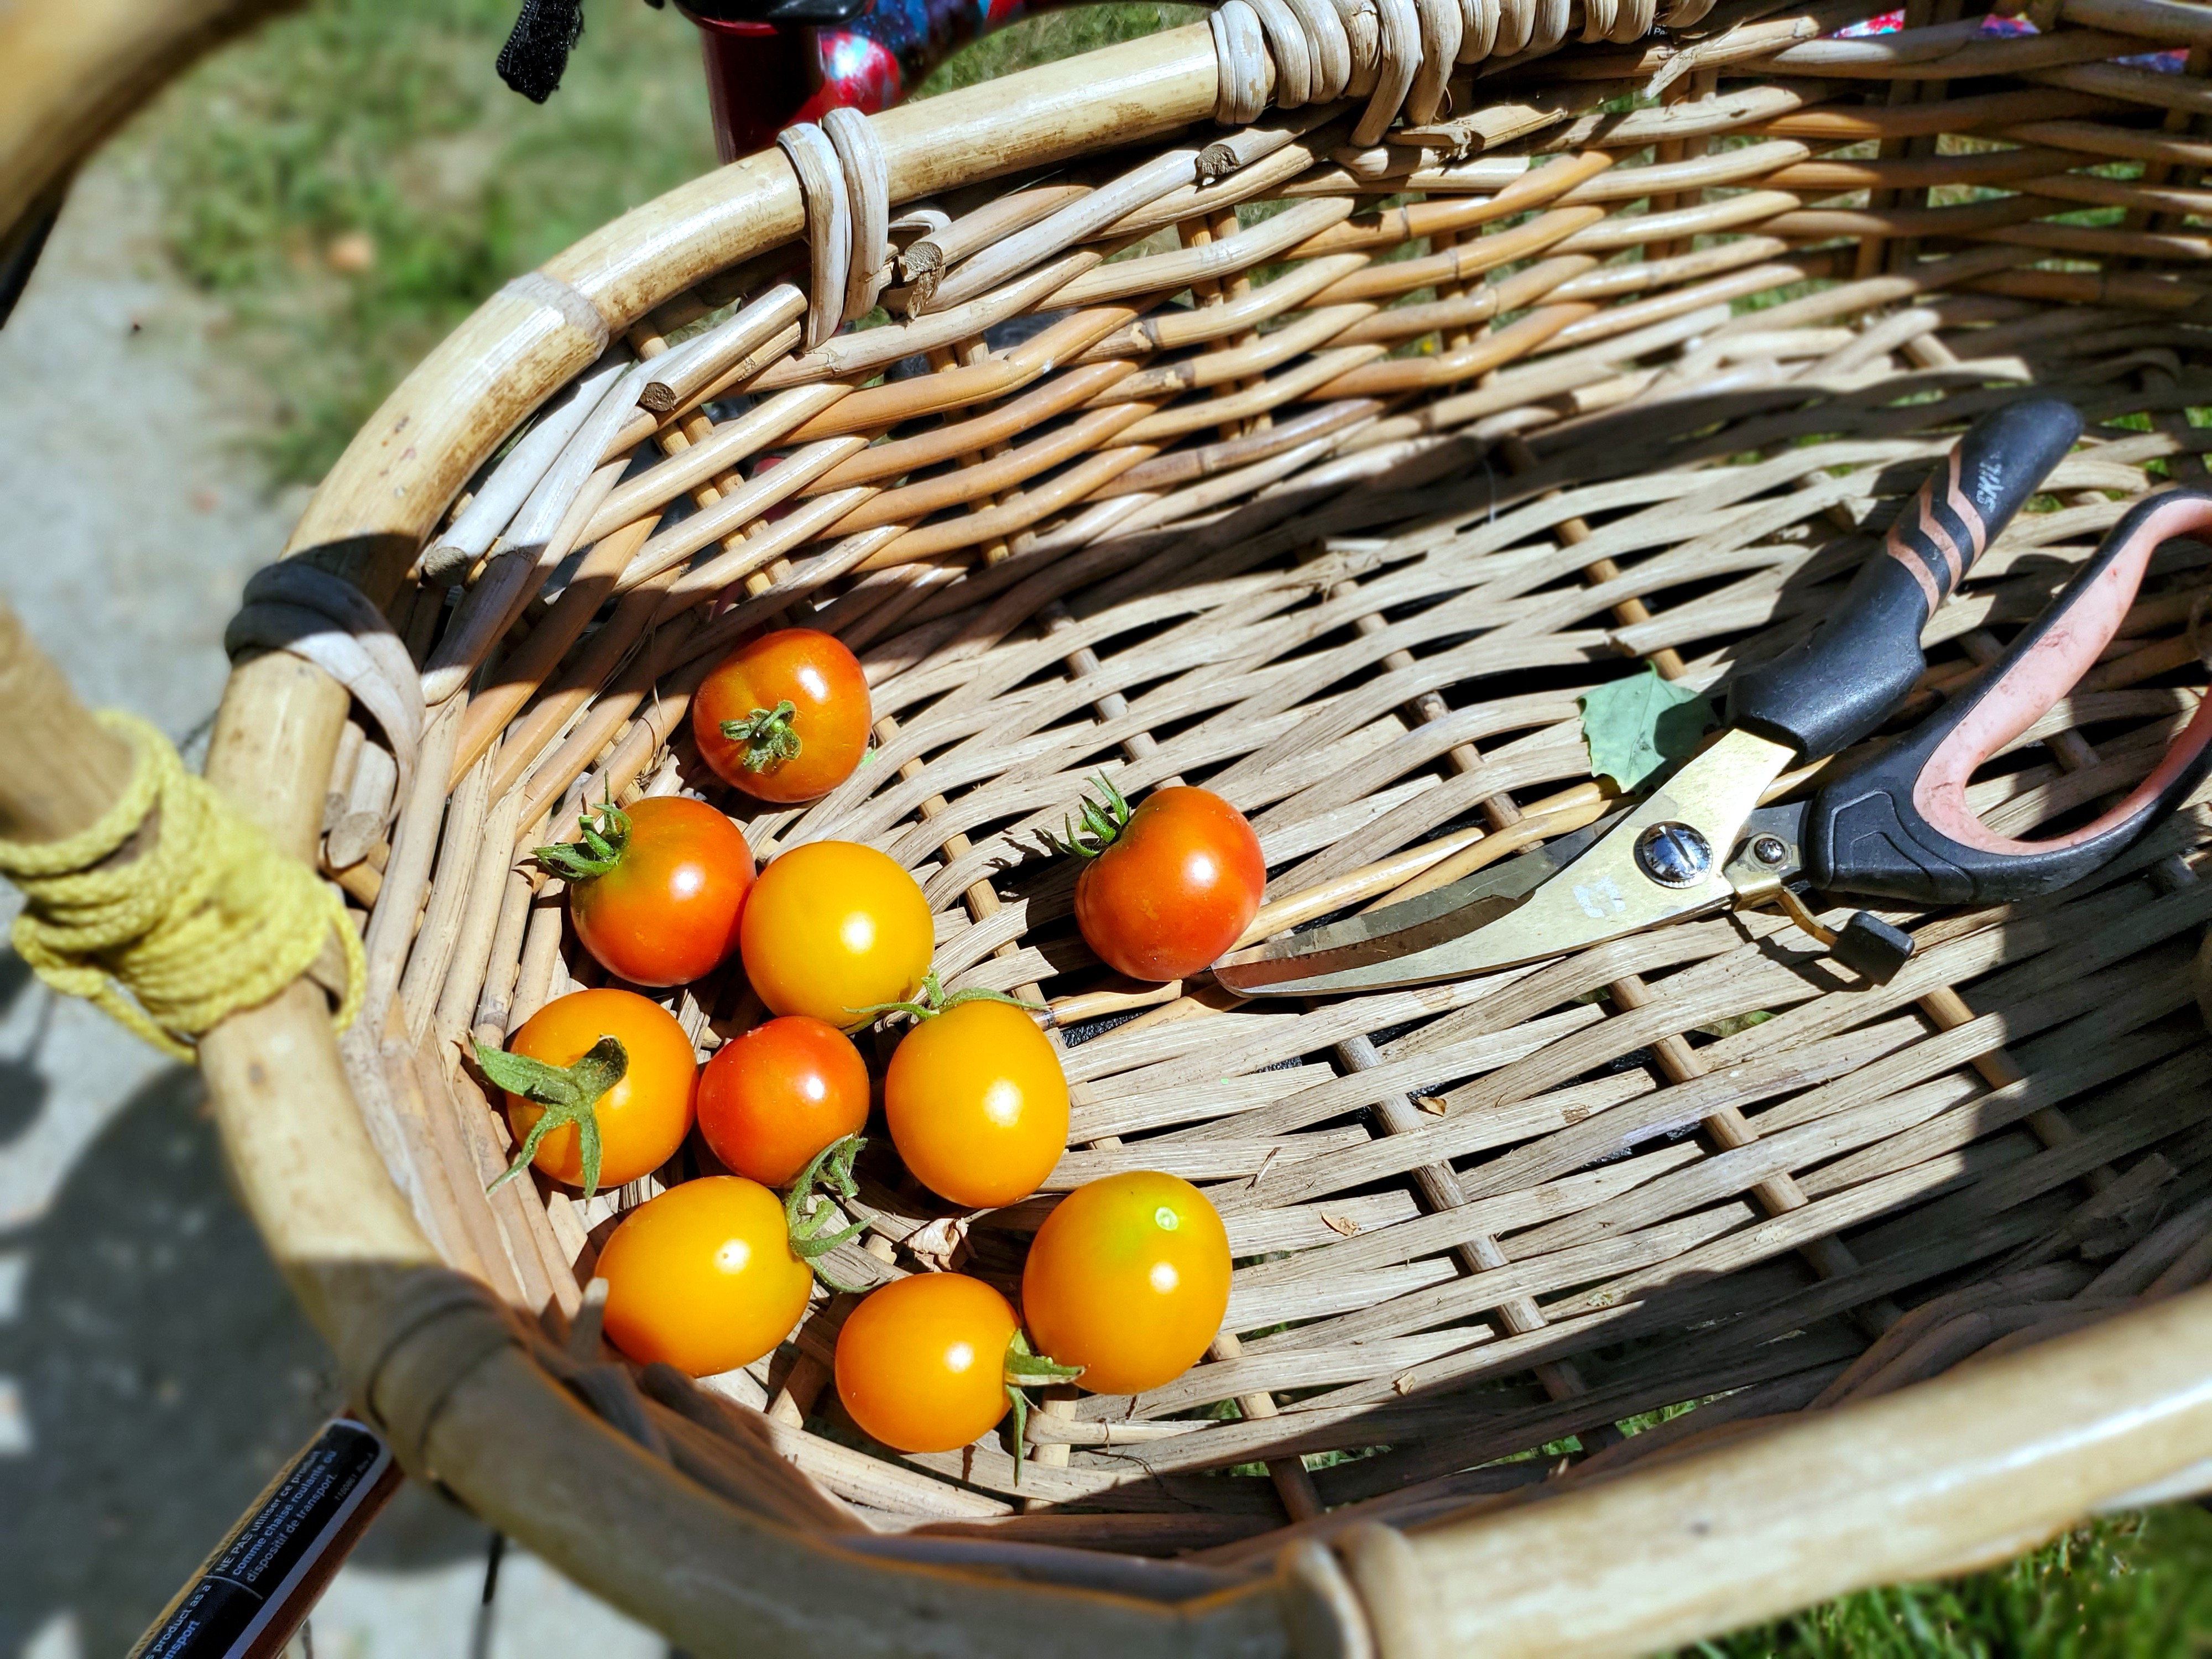 CLose up of a wicker basket with a pair of shears and nine small tomatoes